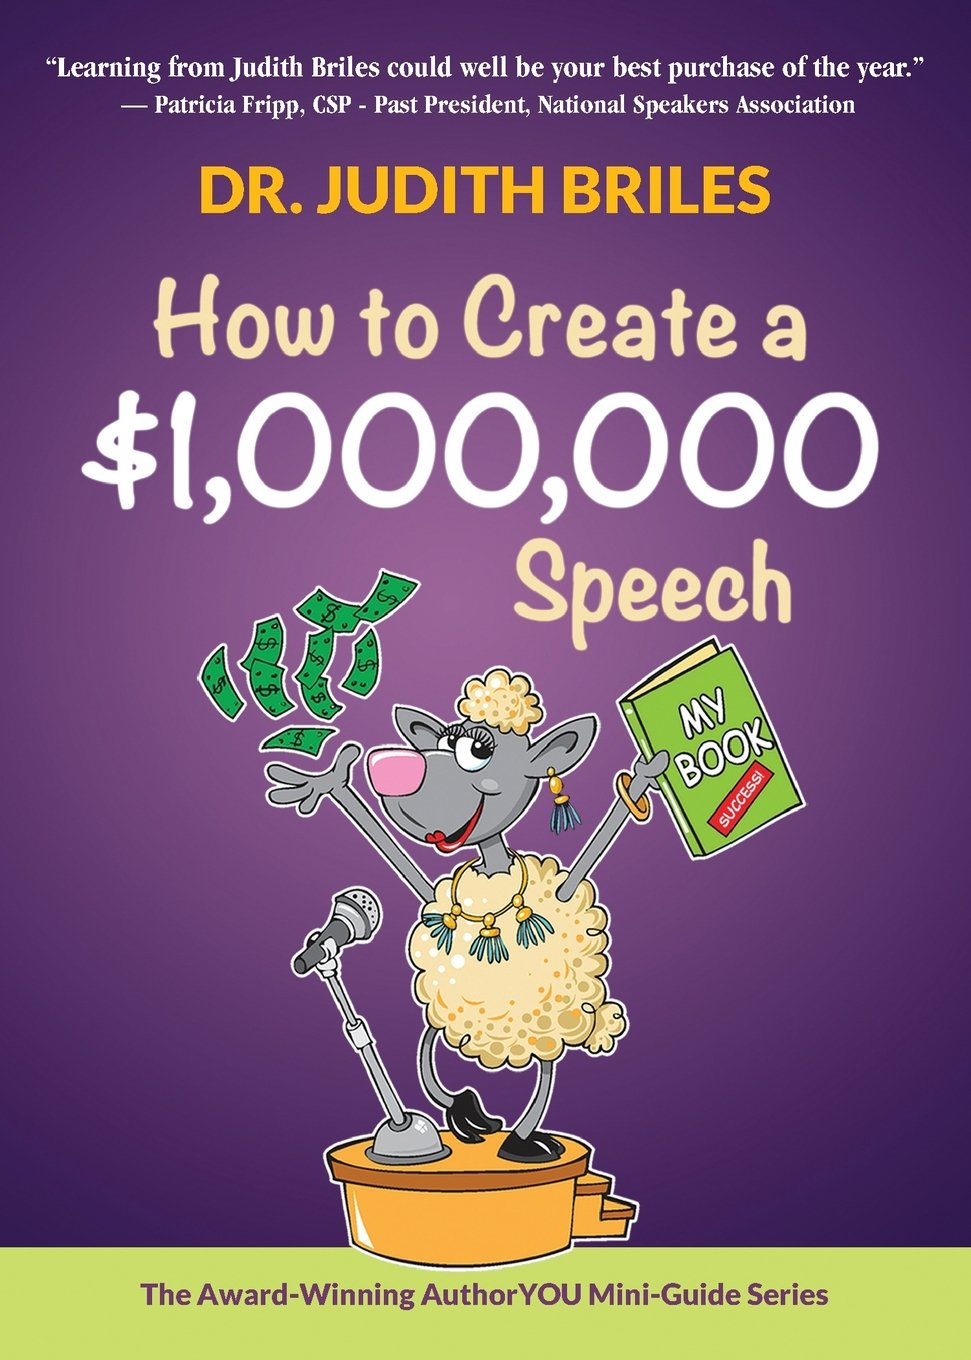 How to Create a $1,000,000 Speech - Learn how to write a speech; become a public and professional speaker; and talk like TED (Authoryou Mini-Guides) Perfect Paperback – May 18, 2018 Judith Briles Mile High Press 1885331673 Reference / General